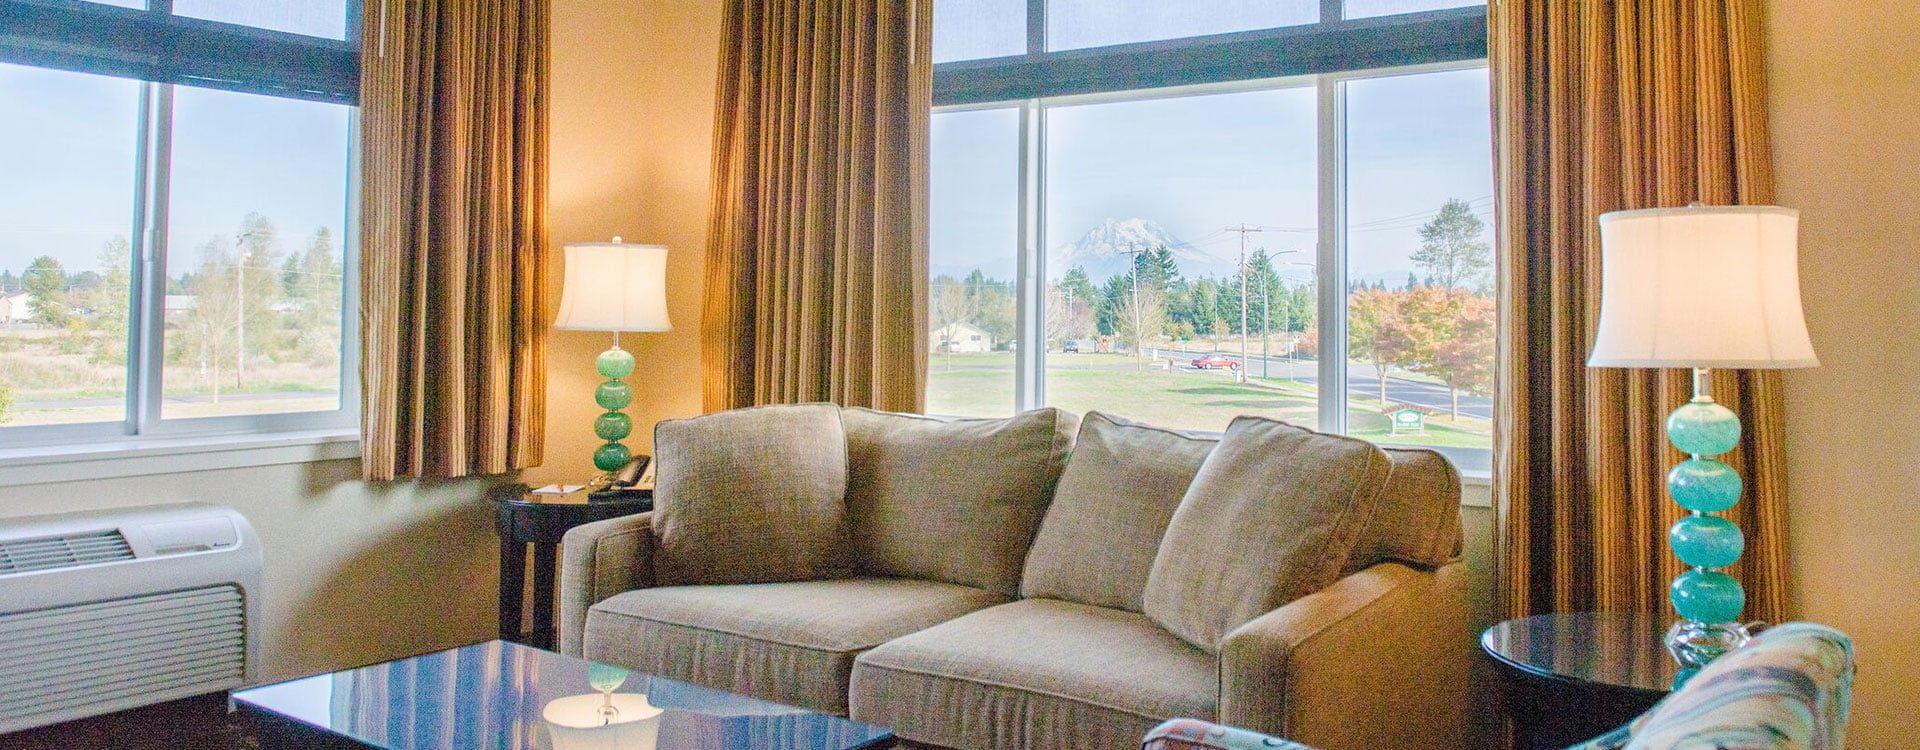 Accommodations in yelm prairie hotel washington